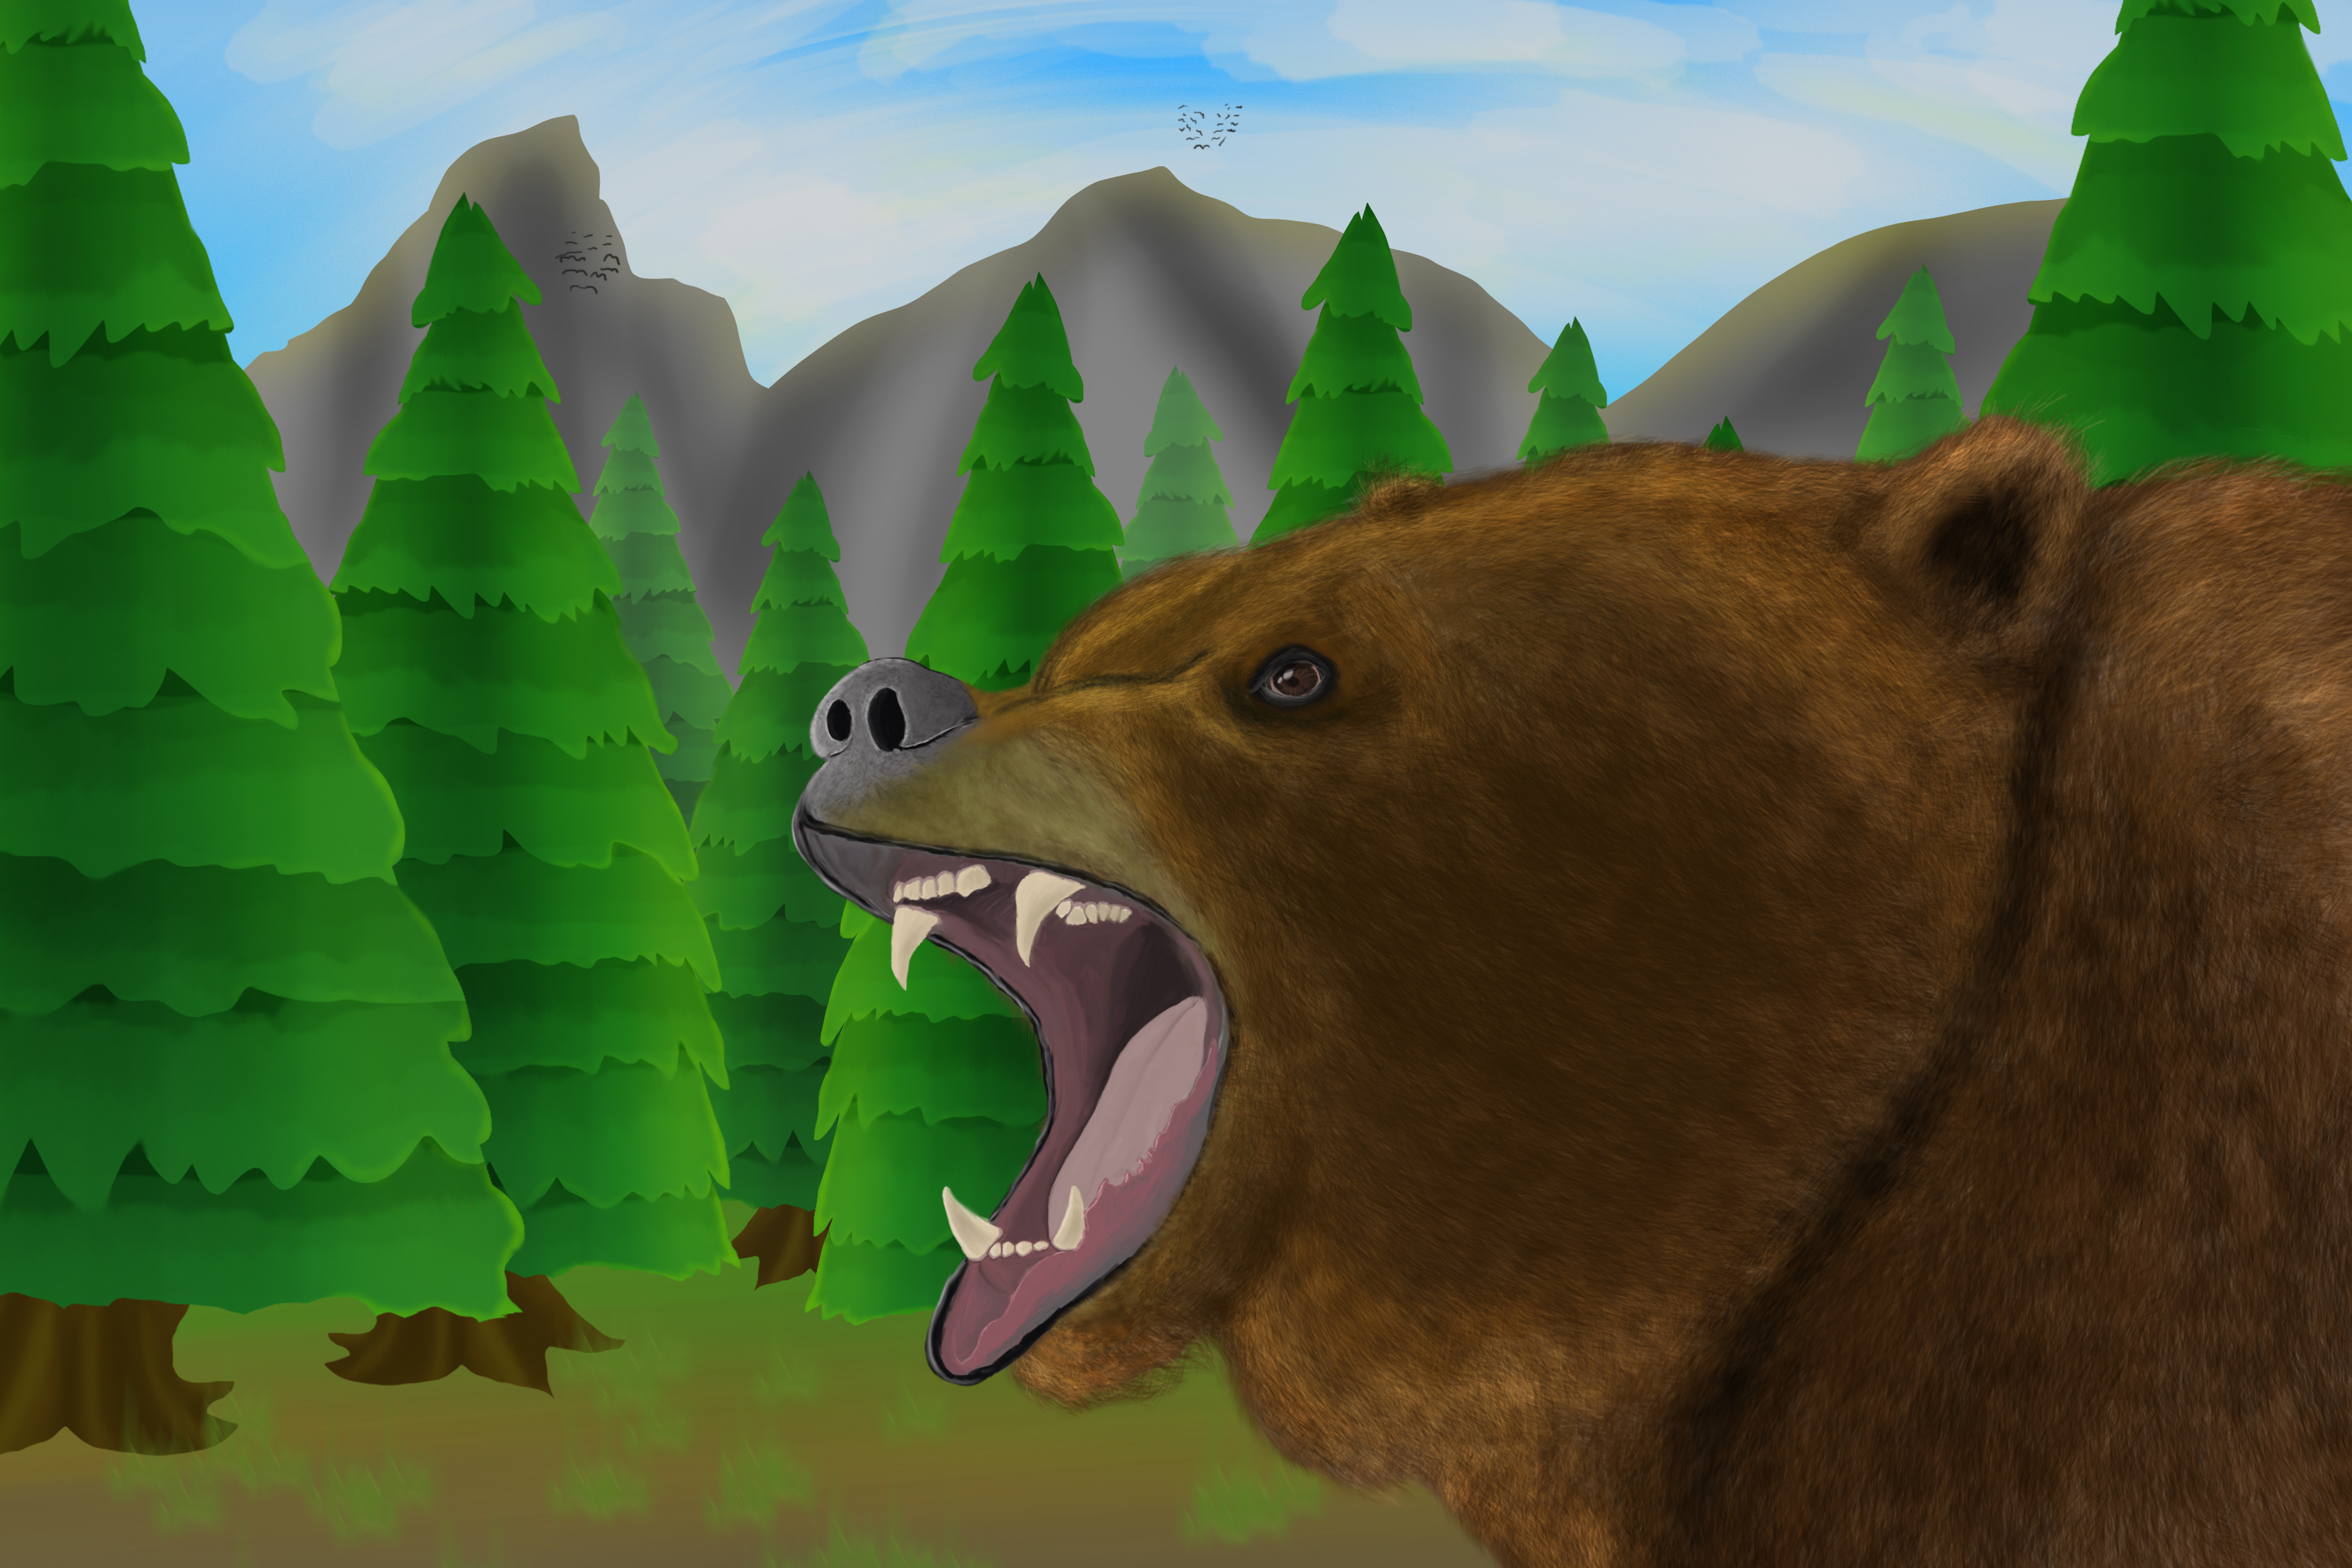 Bear in the wild - Jazza landscape background